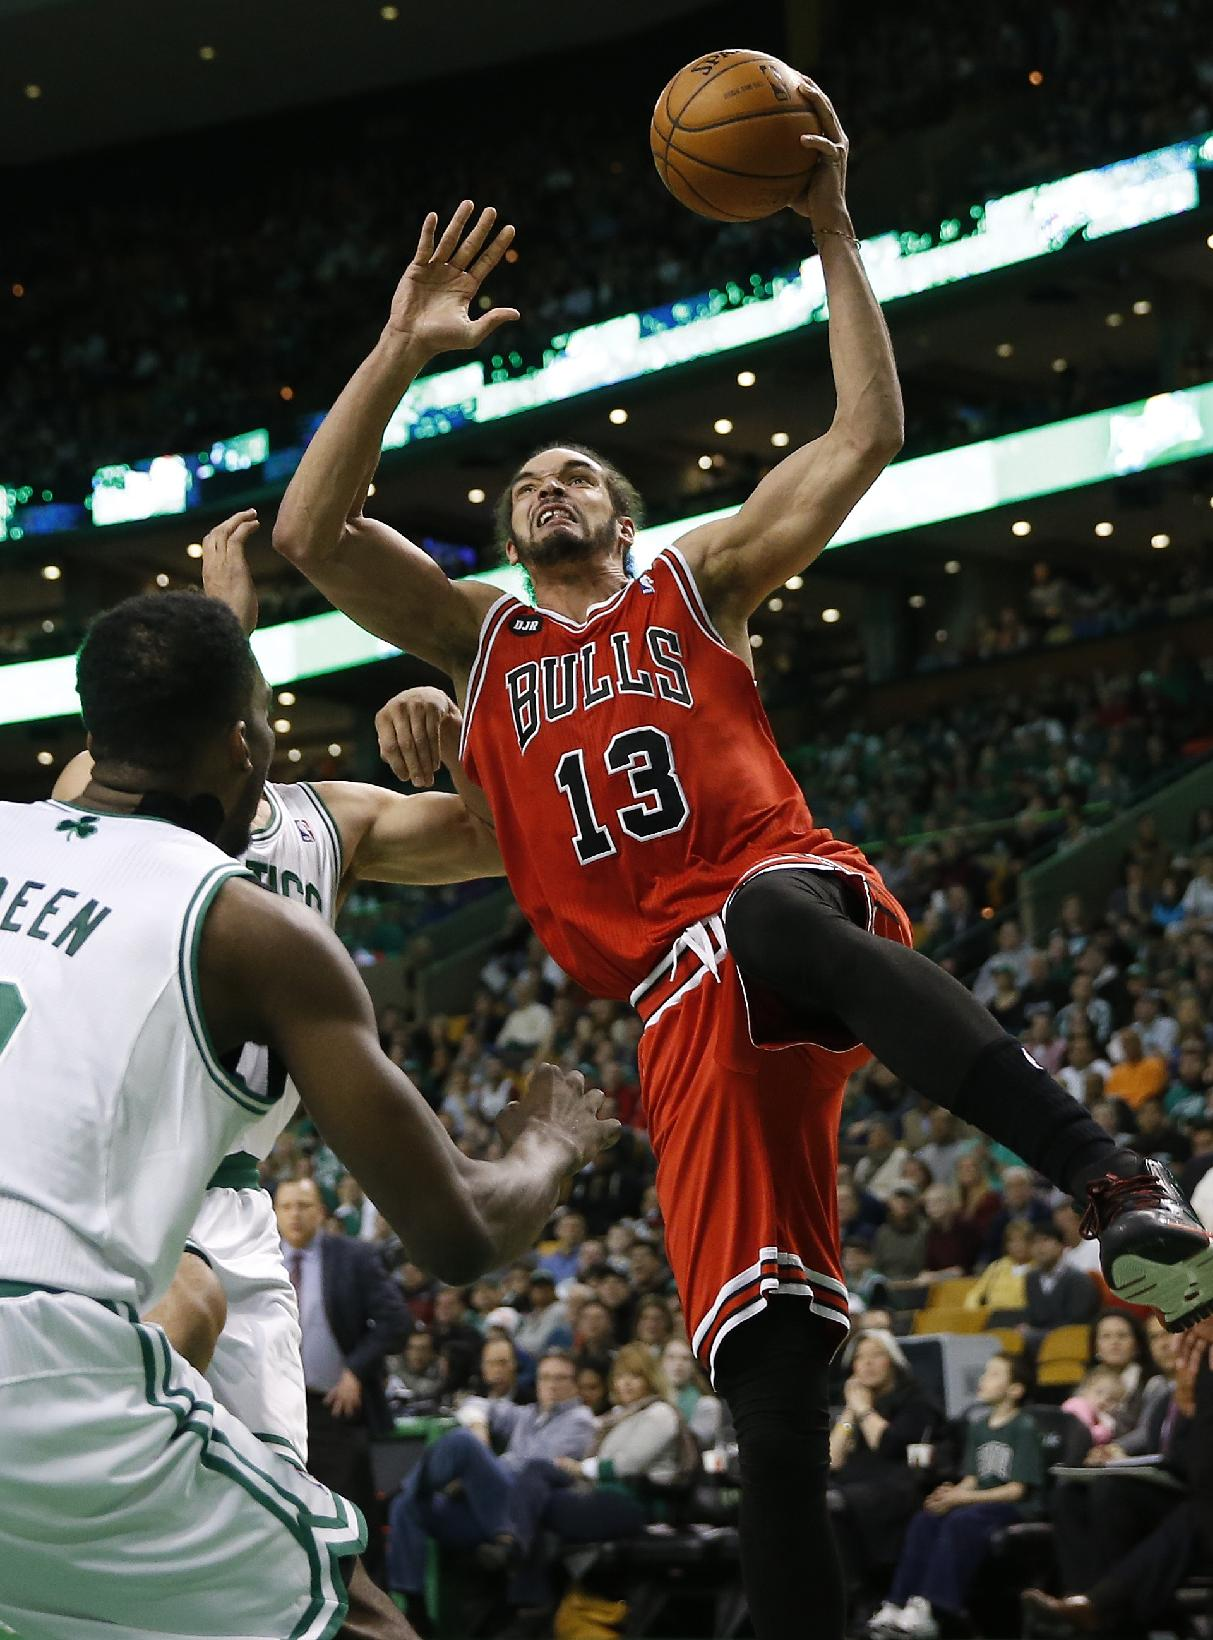 Chicago Bulls' Joakim Noah (13) goes up to shoot in front of Boston Celtics' Jeff Green in the first quarter of an NBA basketball game in Boston, Sunday, March 30, 2014